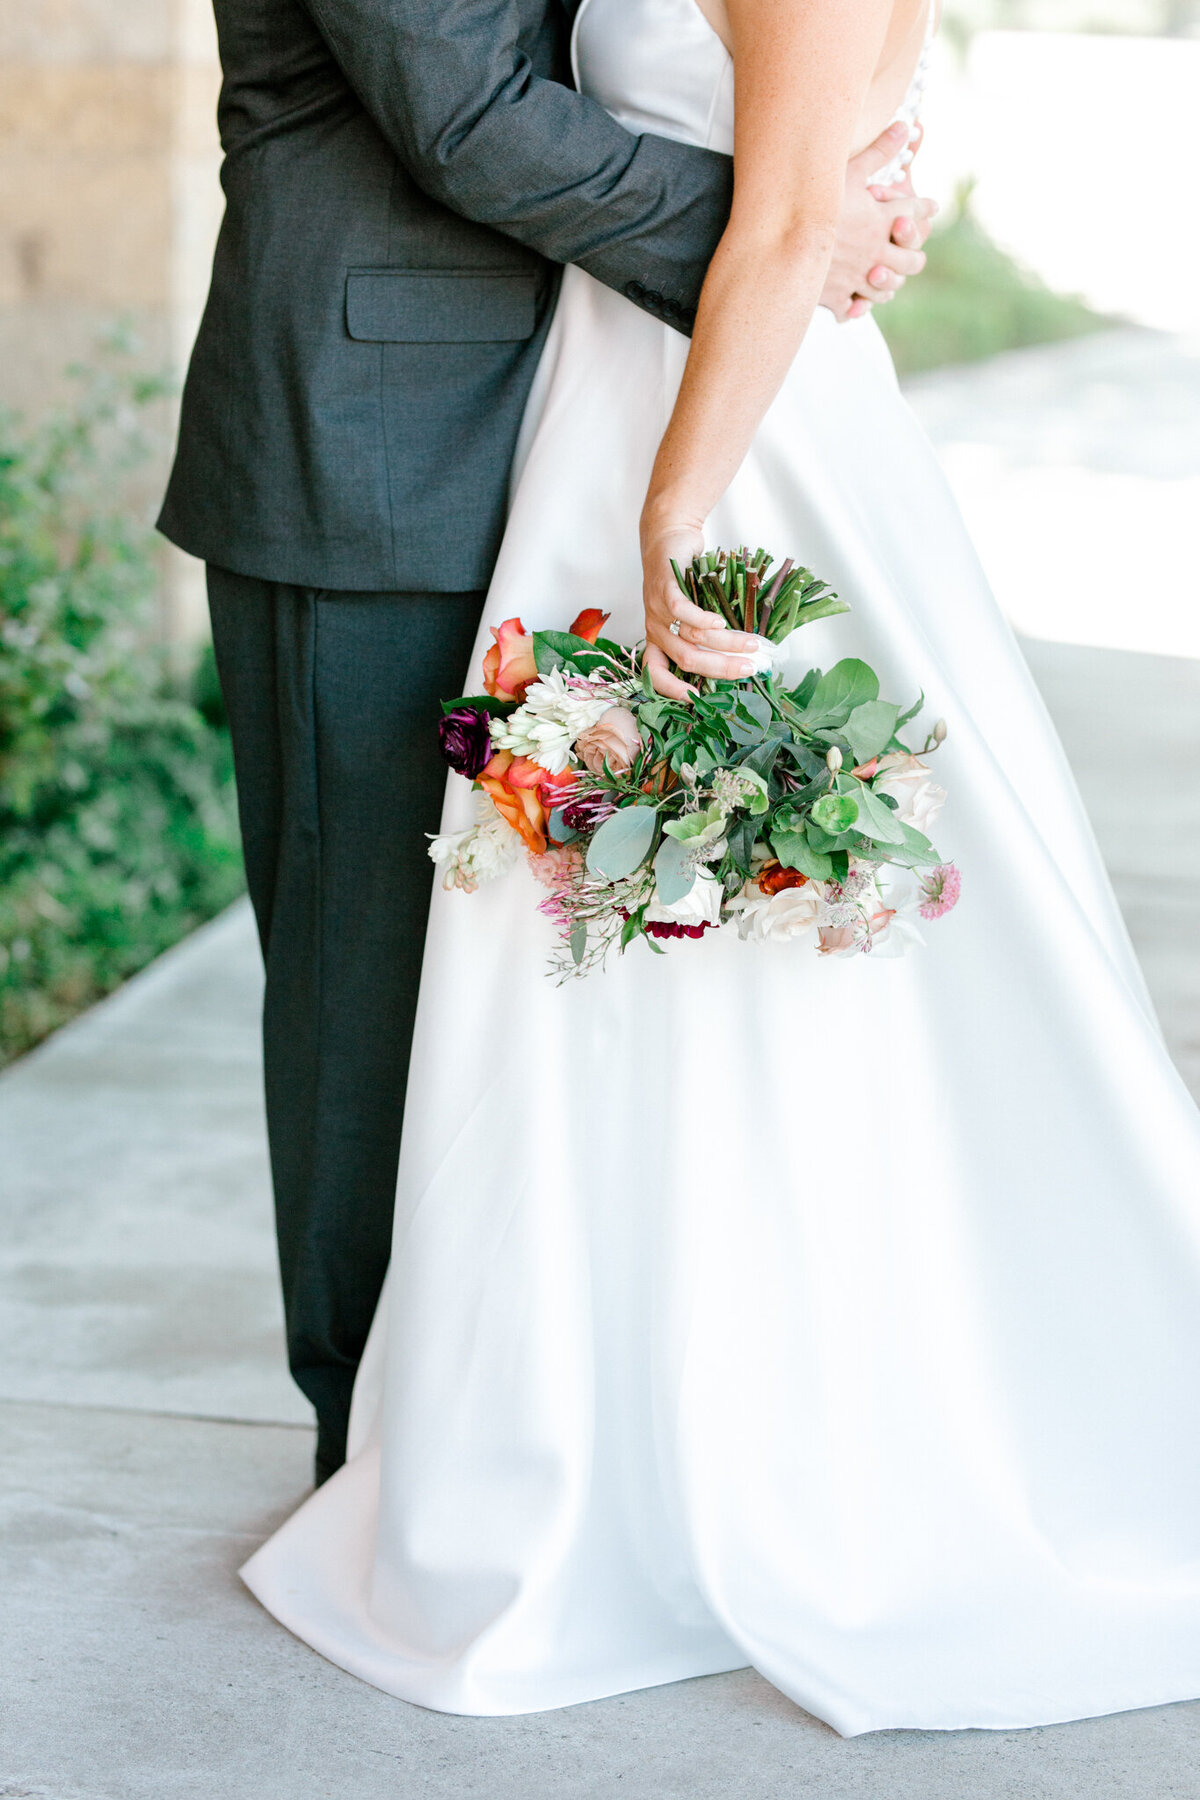 Kaylee & Michael's Wedding at Watermark Community Church | Dallas Wedding Photographer | Sami Kathryn Photography-46